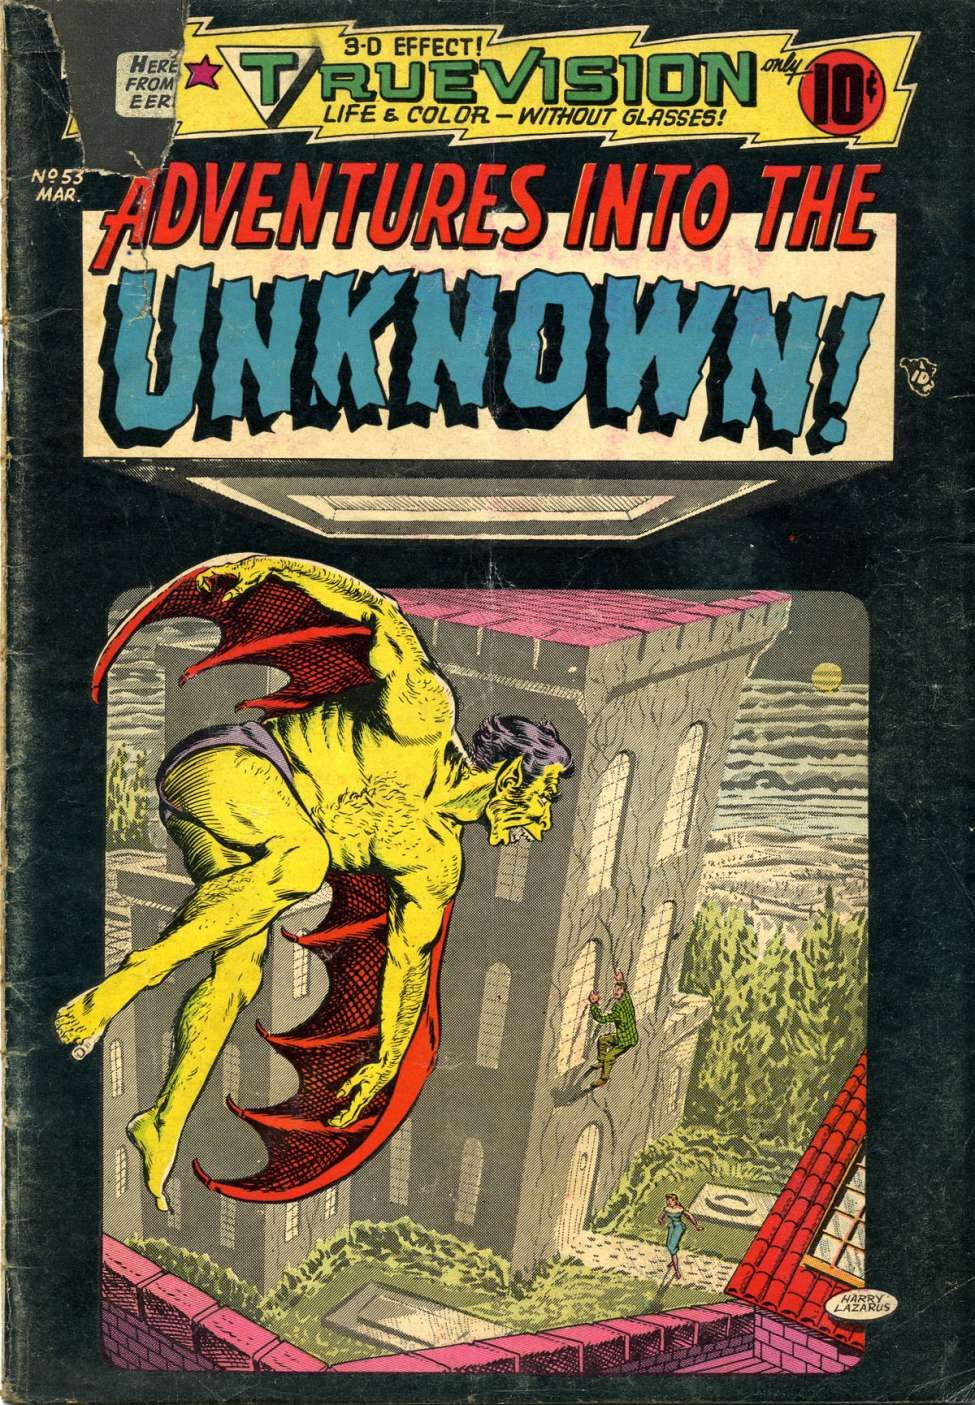 Comic book cover for adventures into the unknown 53